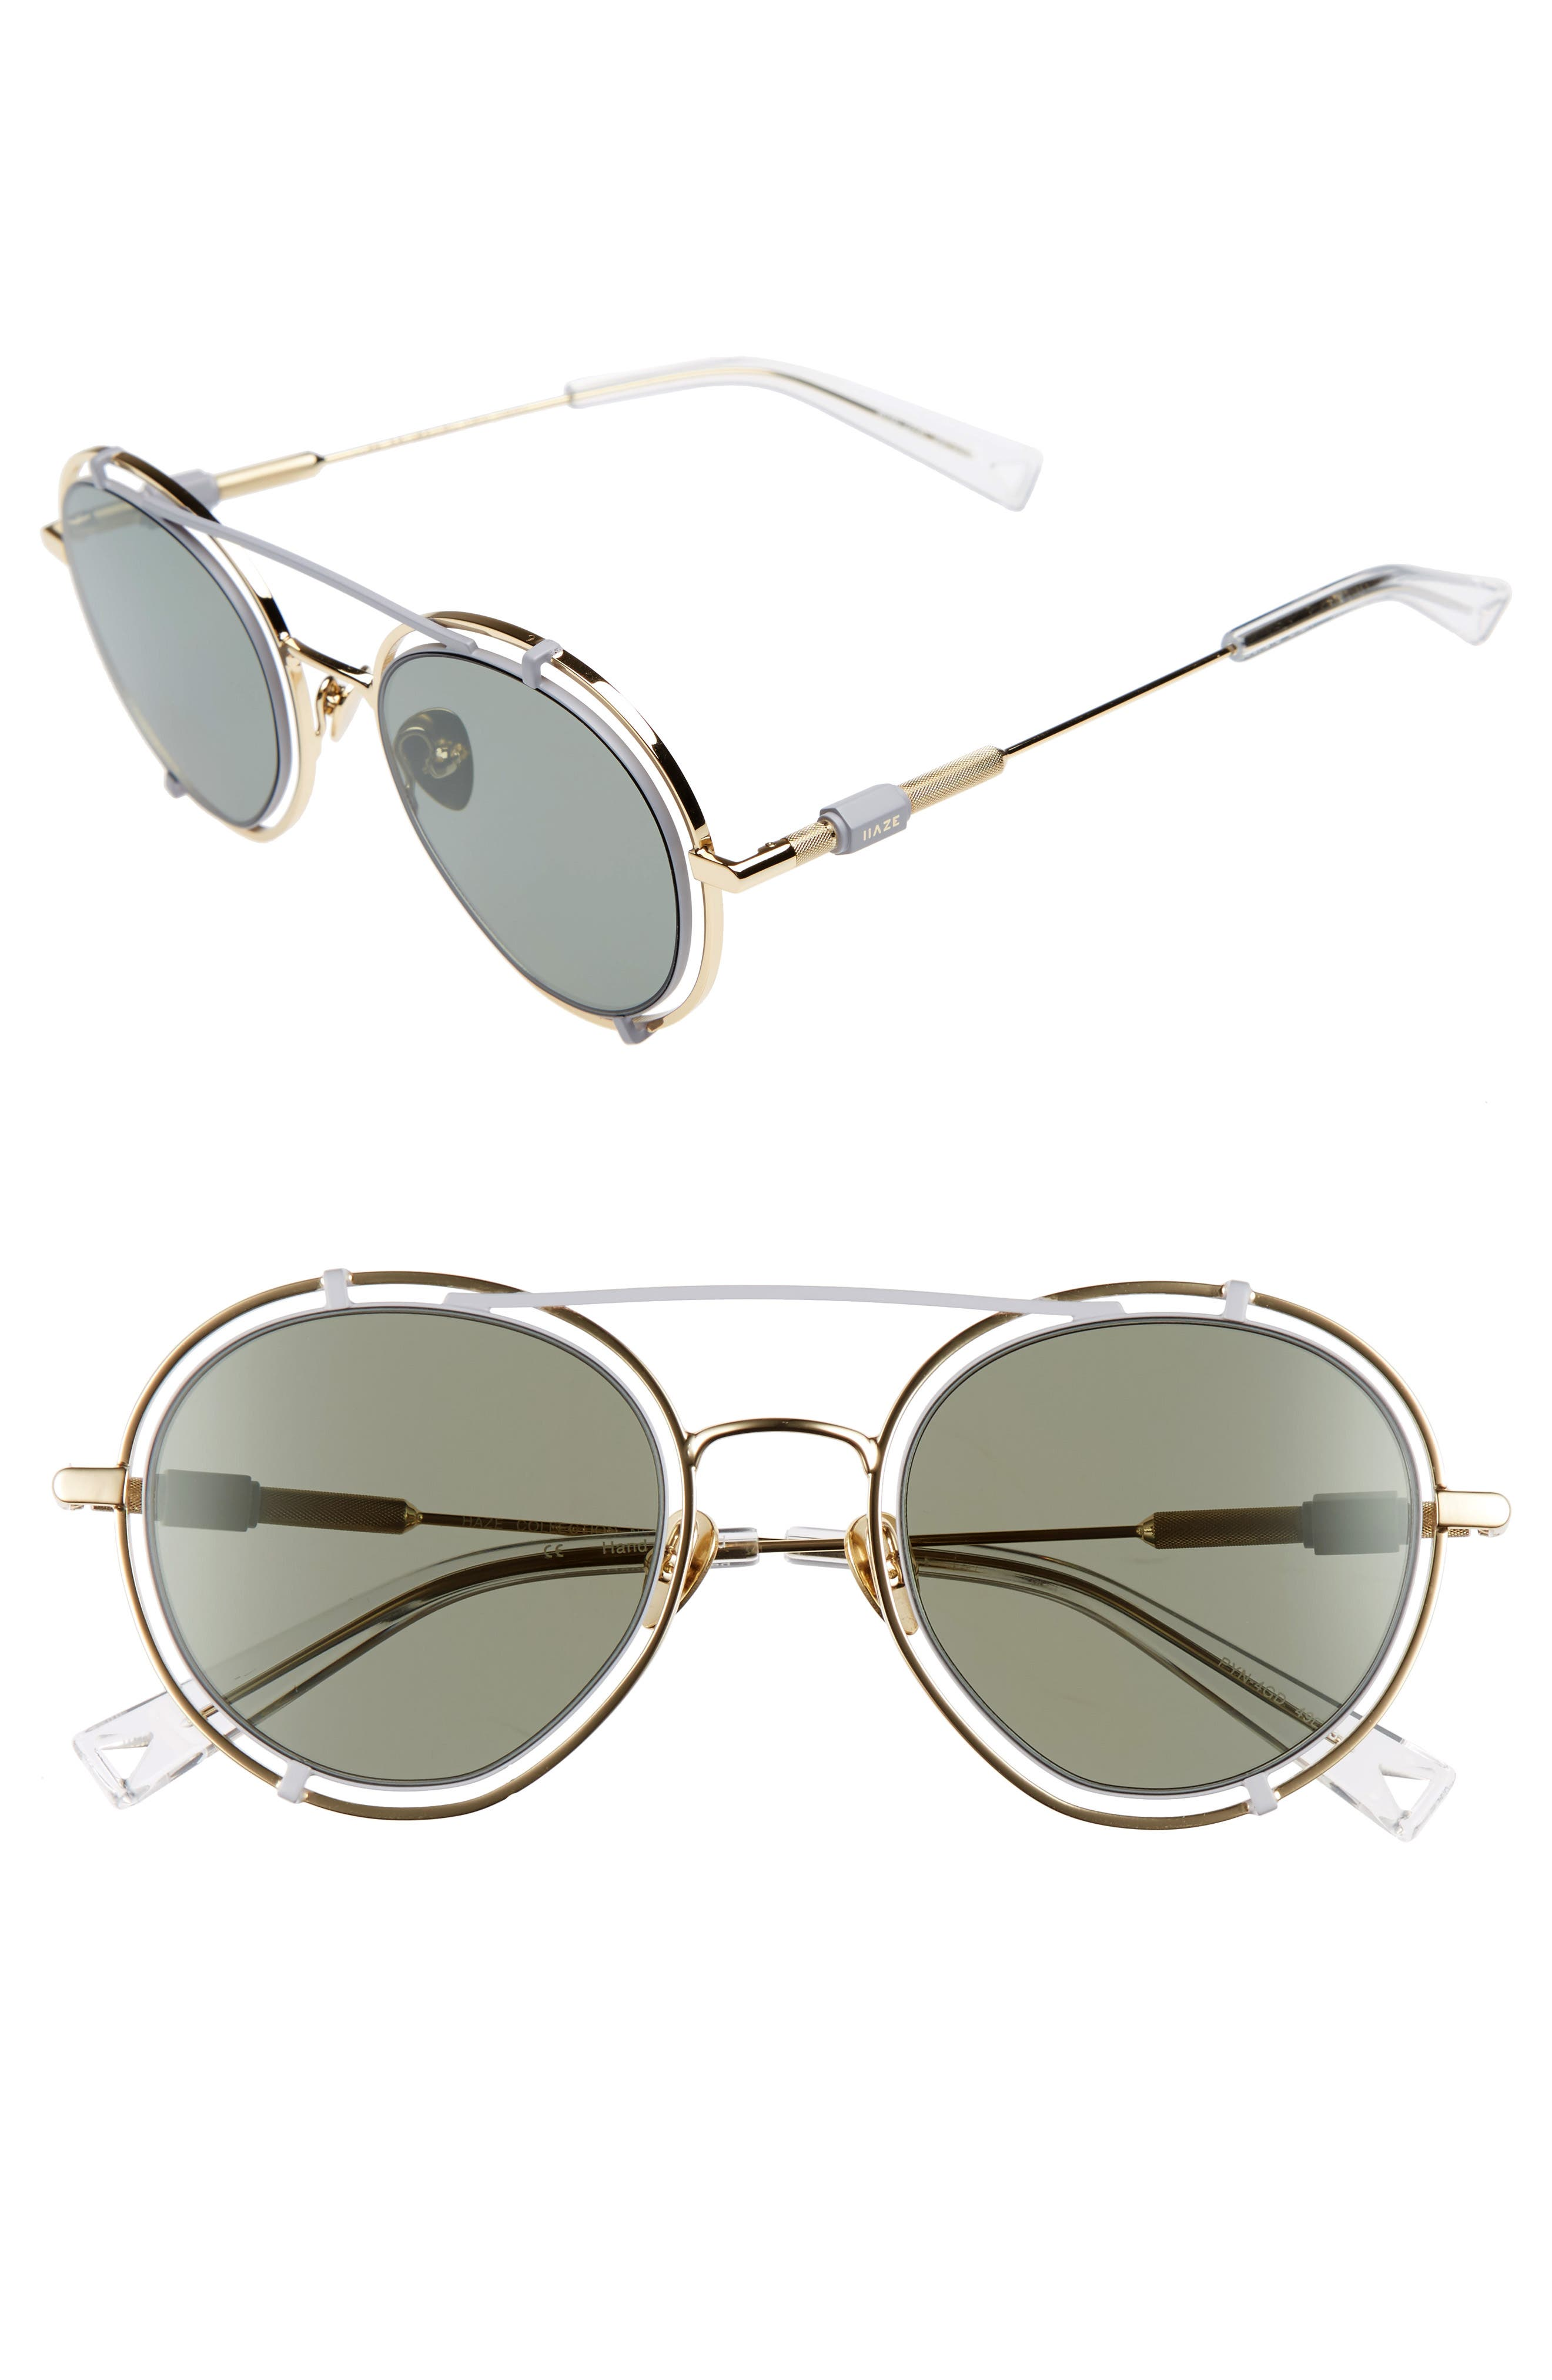 Pyn 55mm Mirrored Sunglasses,                             Main thumbnail 1, color,                             Golden